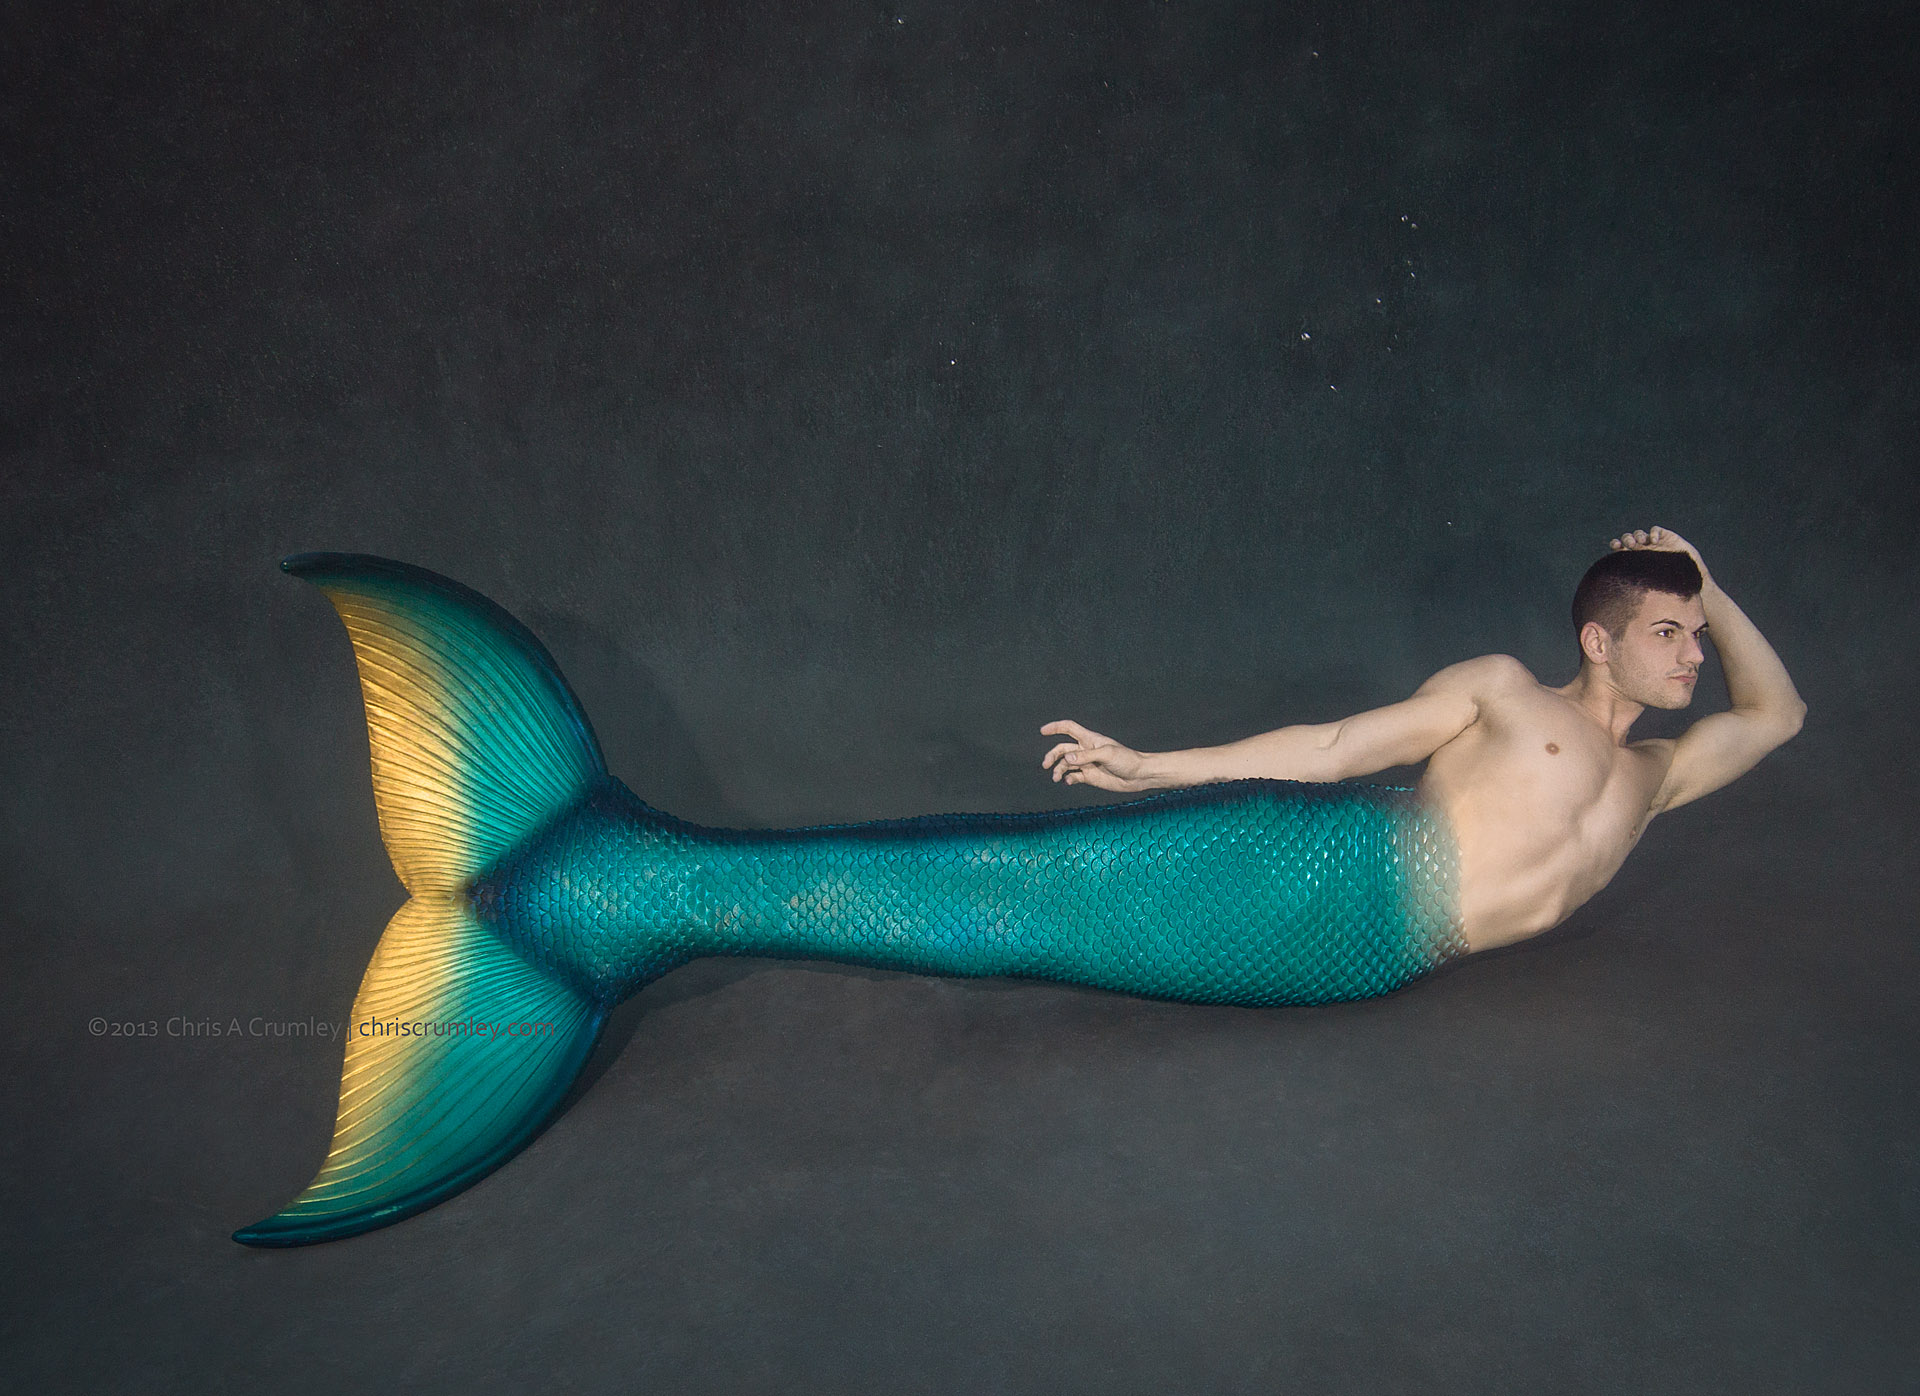 Merman Eric in New Mertailor Tail Design